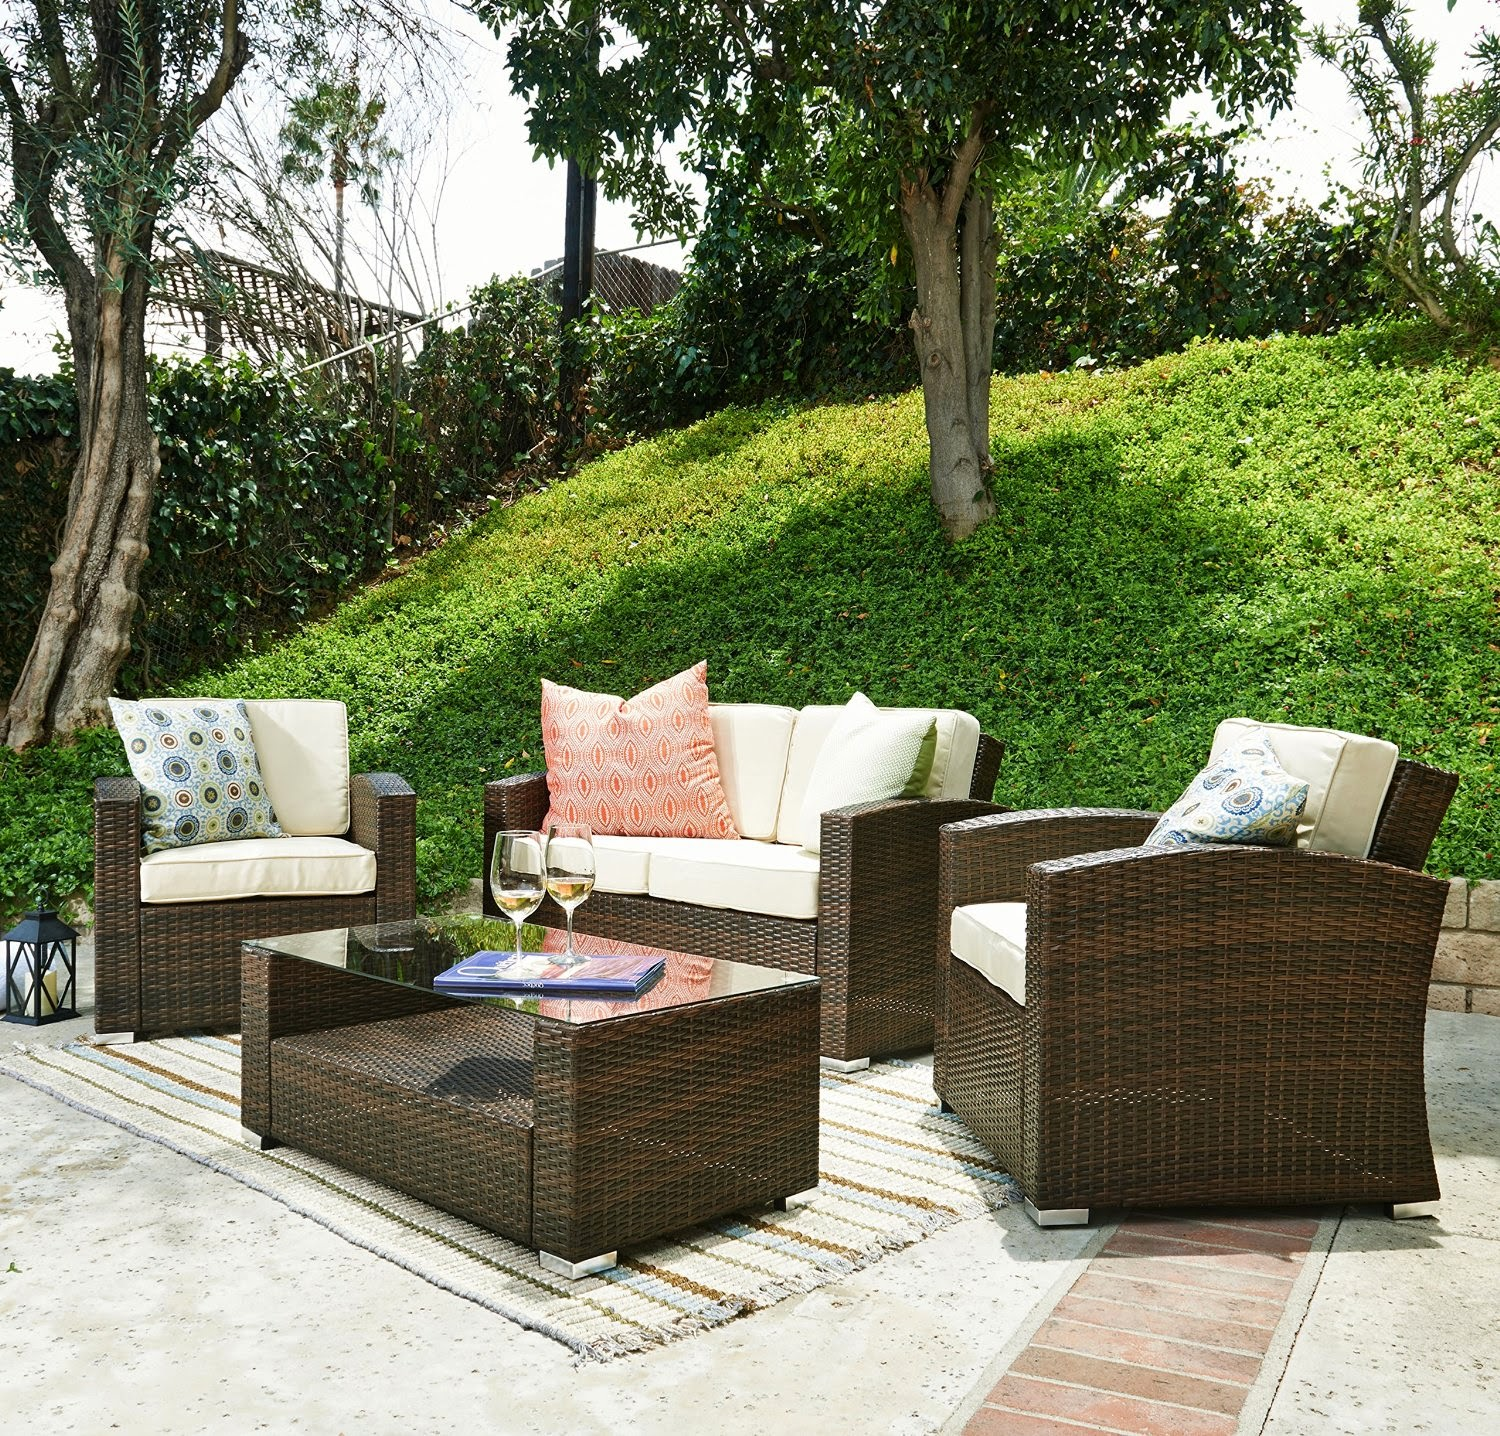 Discount special sale off 58 for outdoor furniture sofa for Affordable outdoor furniture sets